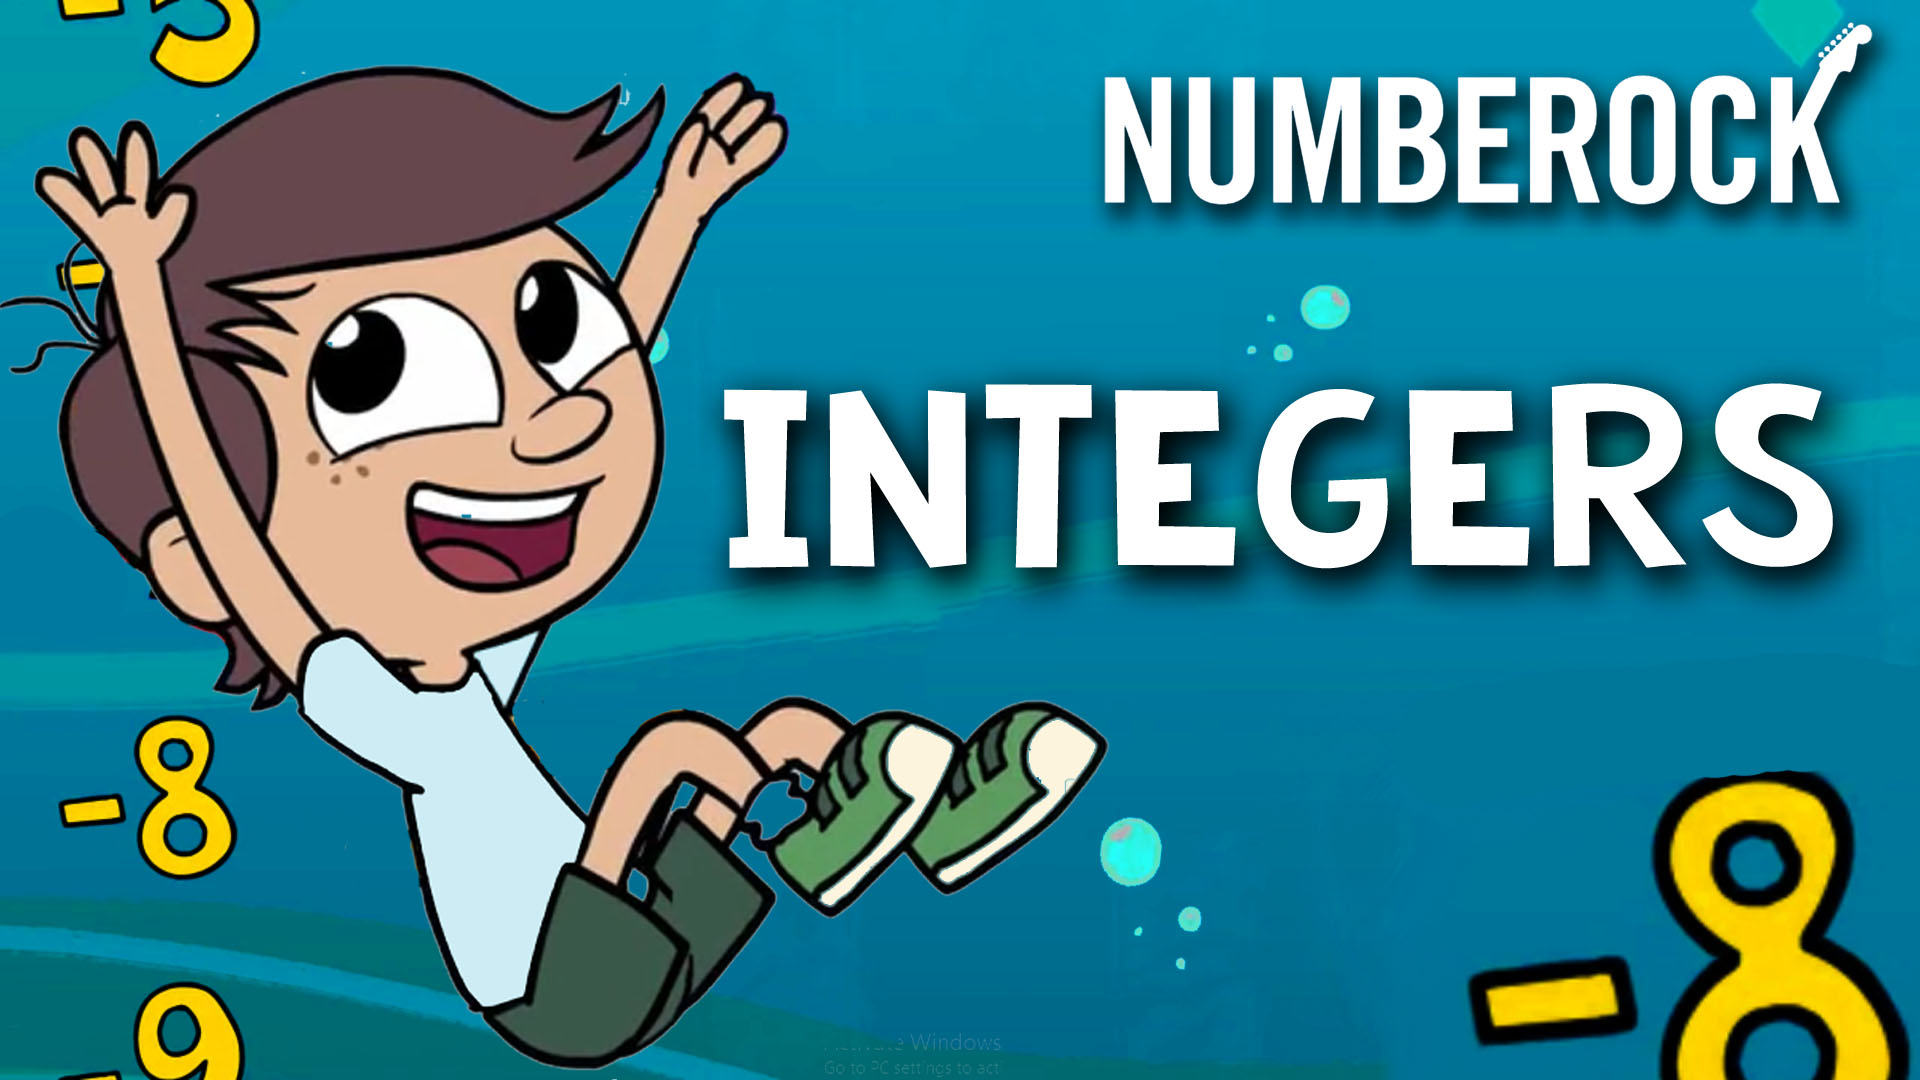 Prime Numbers, Composite Numbers, Square Numbers by NUMBEROCK